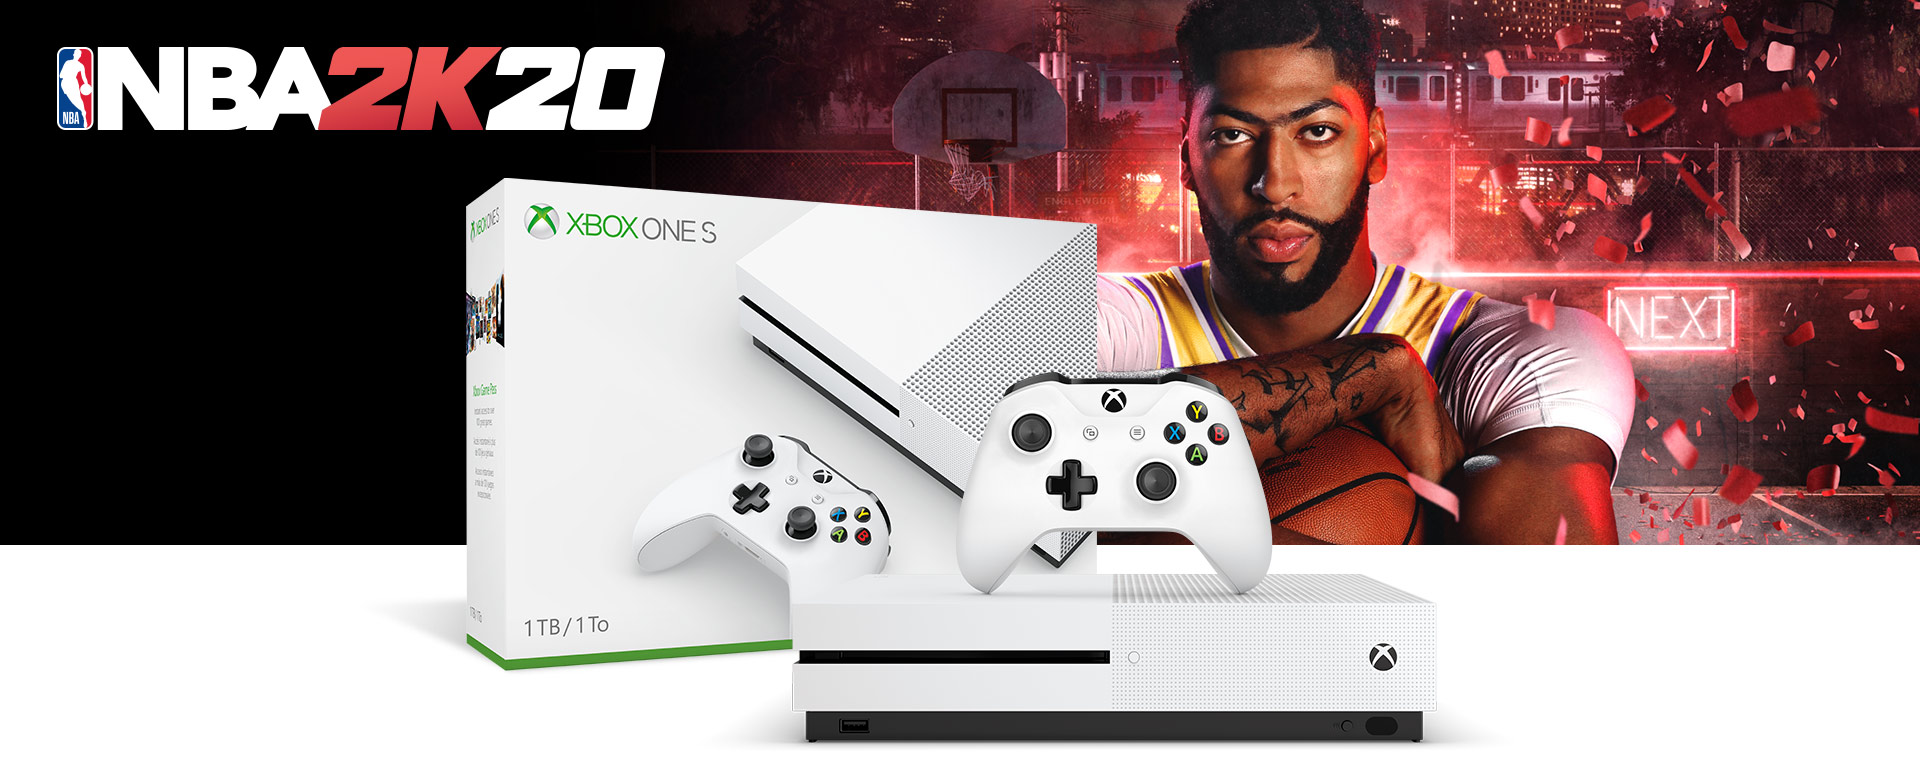 Xbox One S console in front of a hardware bundle box featuring NBA 2K20 art